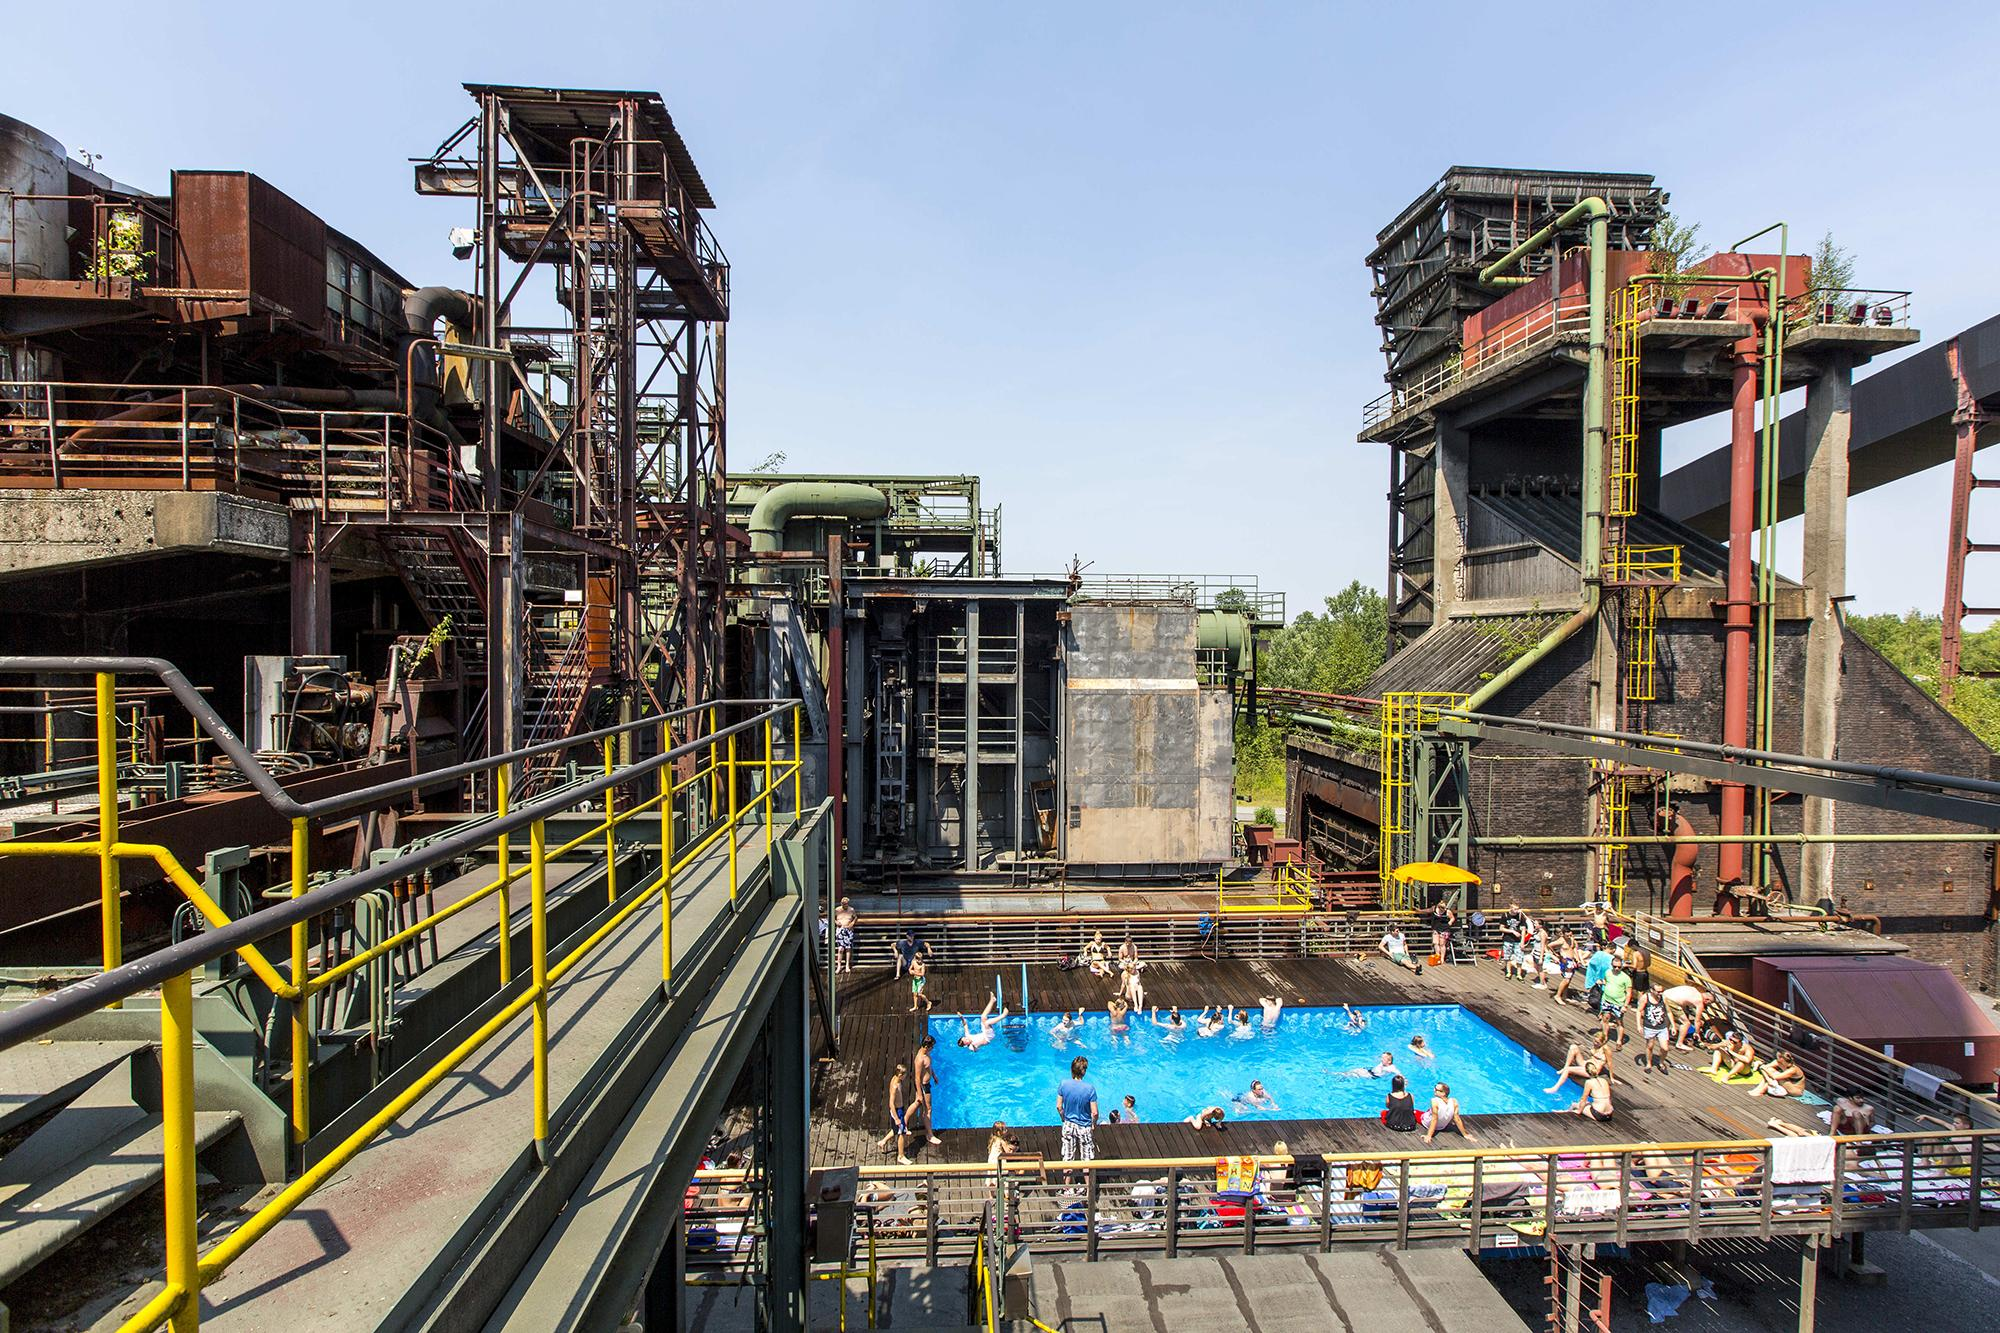 The 2.4 x 12 x 5 metre Works Swimming Pool by the artists Dirk Paschke and Daniel Milohnic consists of two overseas containers that were cut apart and then welded together. – © Jochen Tack, Zollverein Foundation